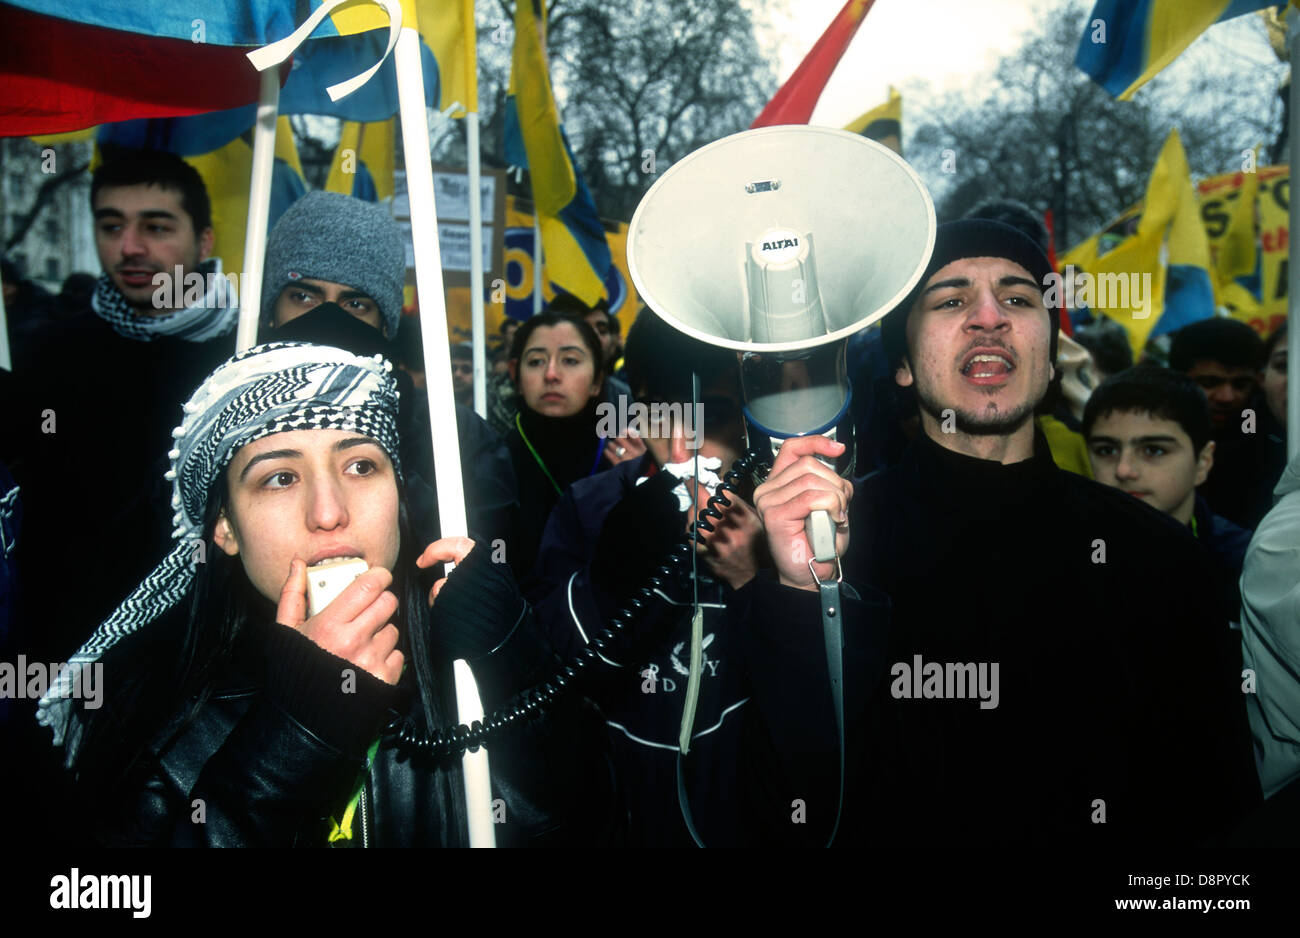 Stop the War in Iraq demo, London, UK. 15 February 2003. - Stock Image